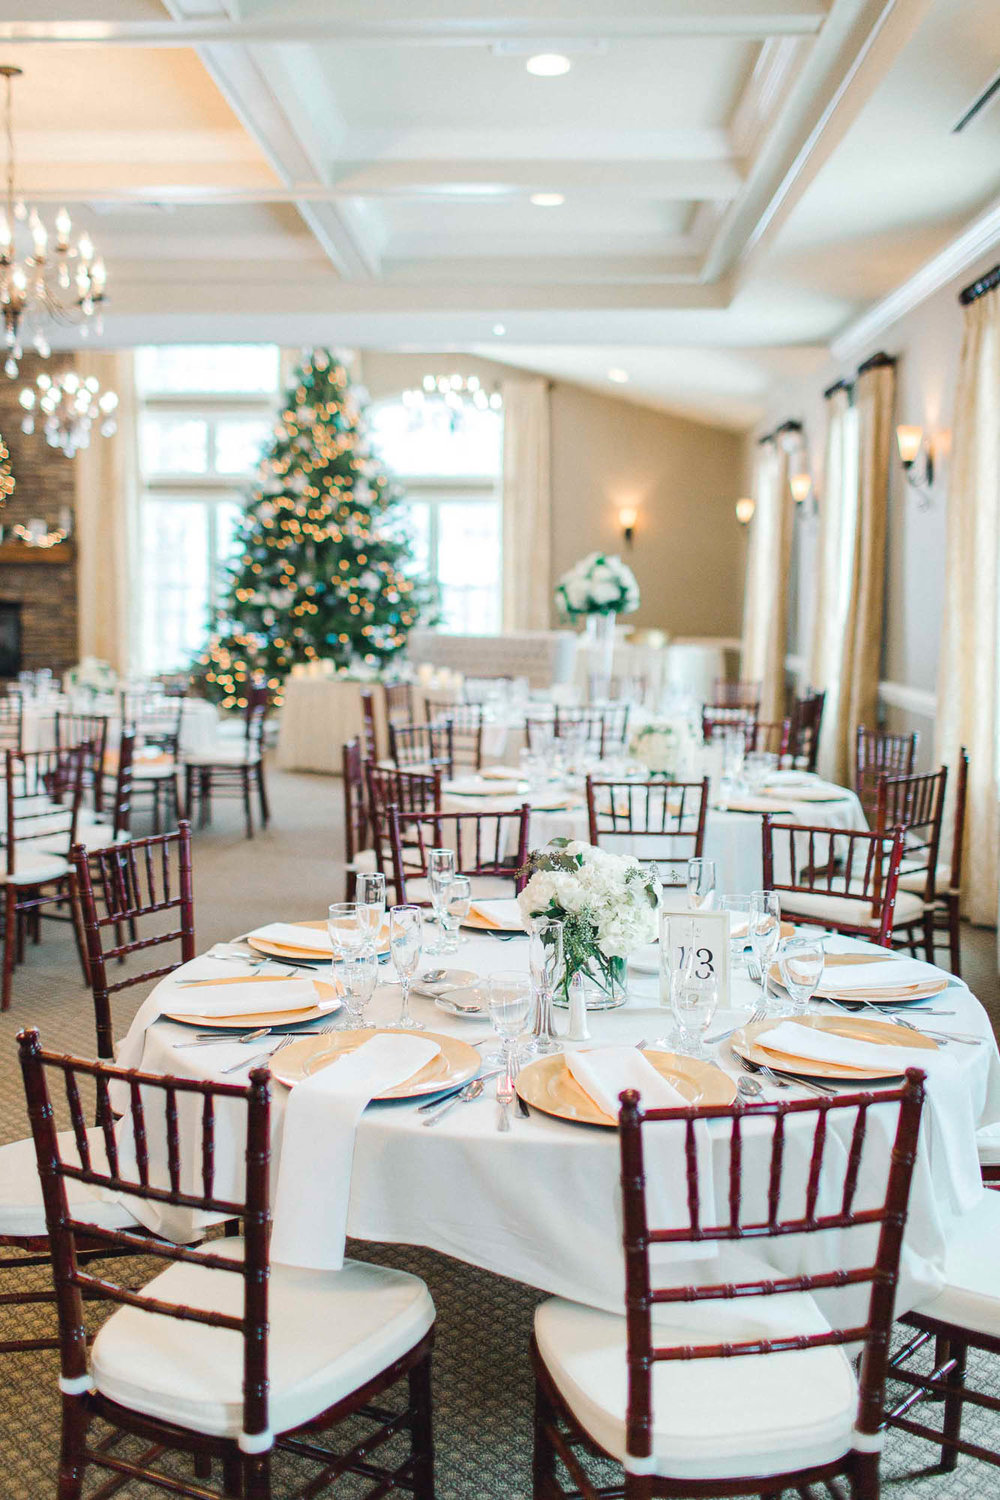 snowy-sand-springs-country-club-drums-pa-christmas-wedding-34517.jpg